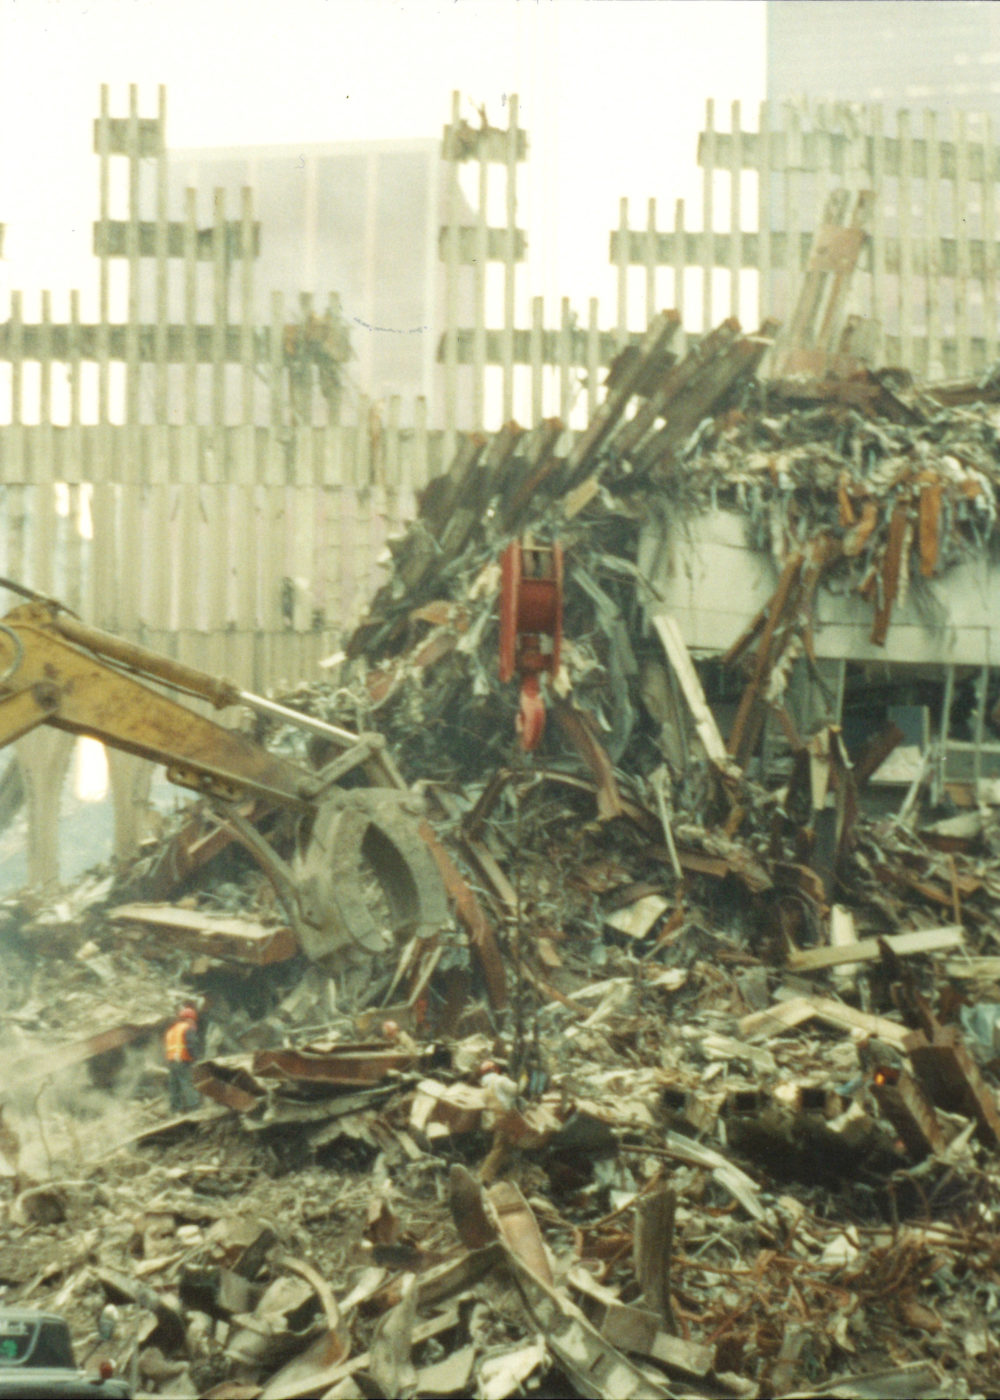 A Digger Moving Through Rubble at Ground Zero